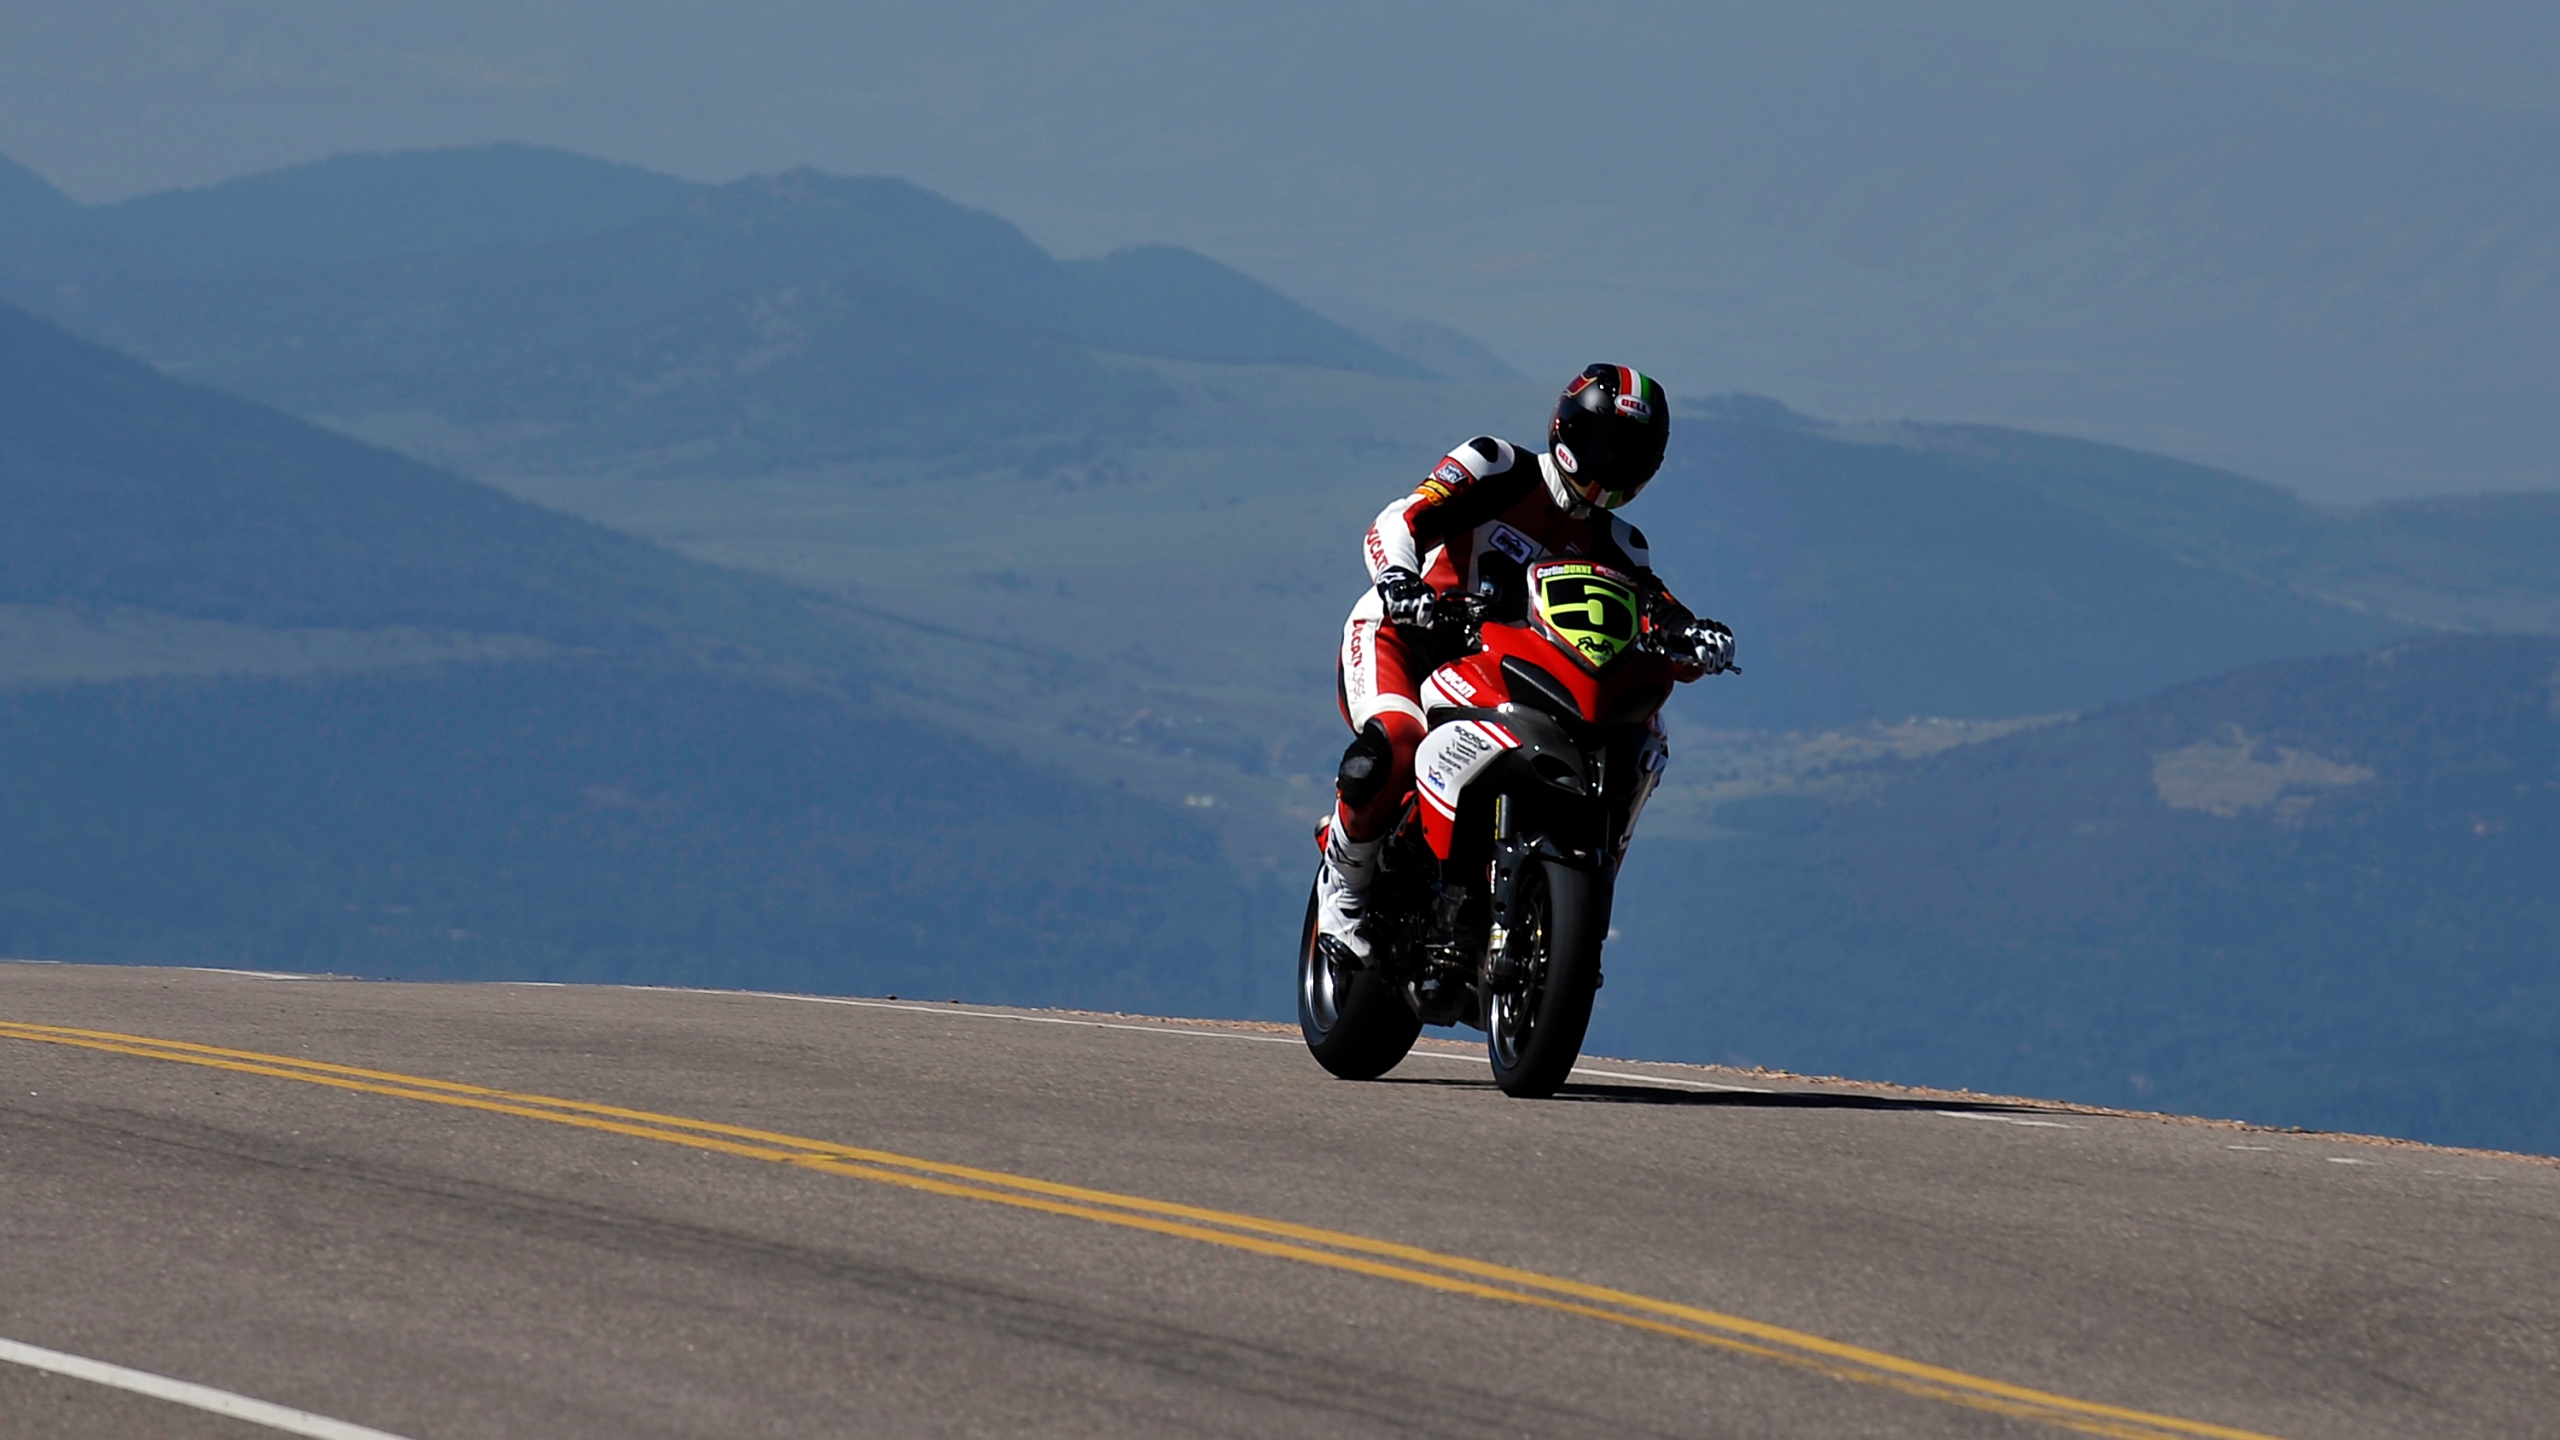 Ducati rider Carlin Dunne makes his way to the finish during the Pikes Peak International Hill Climb on August 12, 2012 in Colorado Springs, Colorado. (Credit: Rainier Ehrhardt/Getty Images)